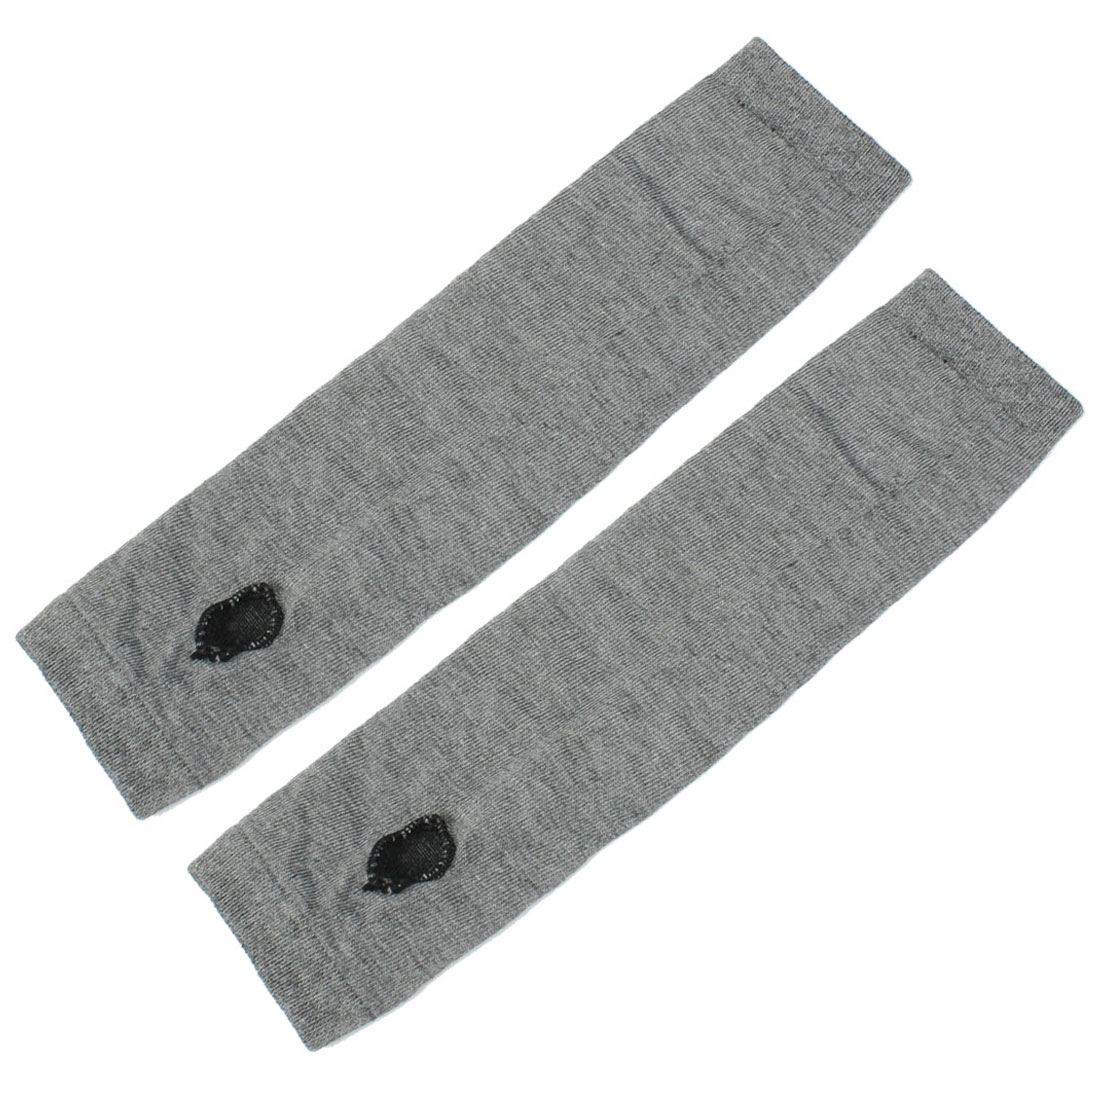 Unique Bargains Women Girls Elastic Thumbless Fingerless Arm Warmers Gloves Gray